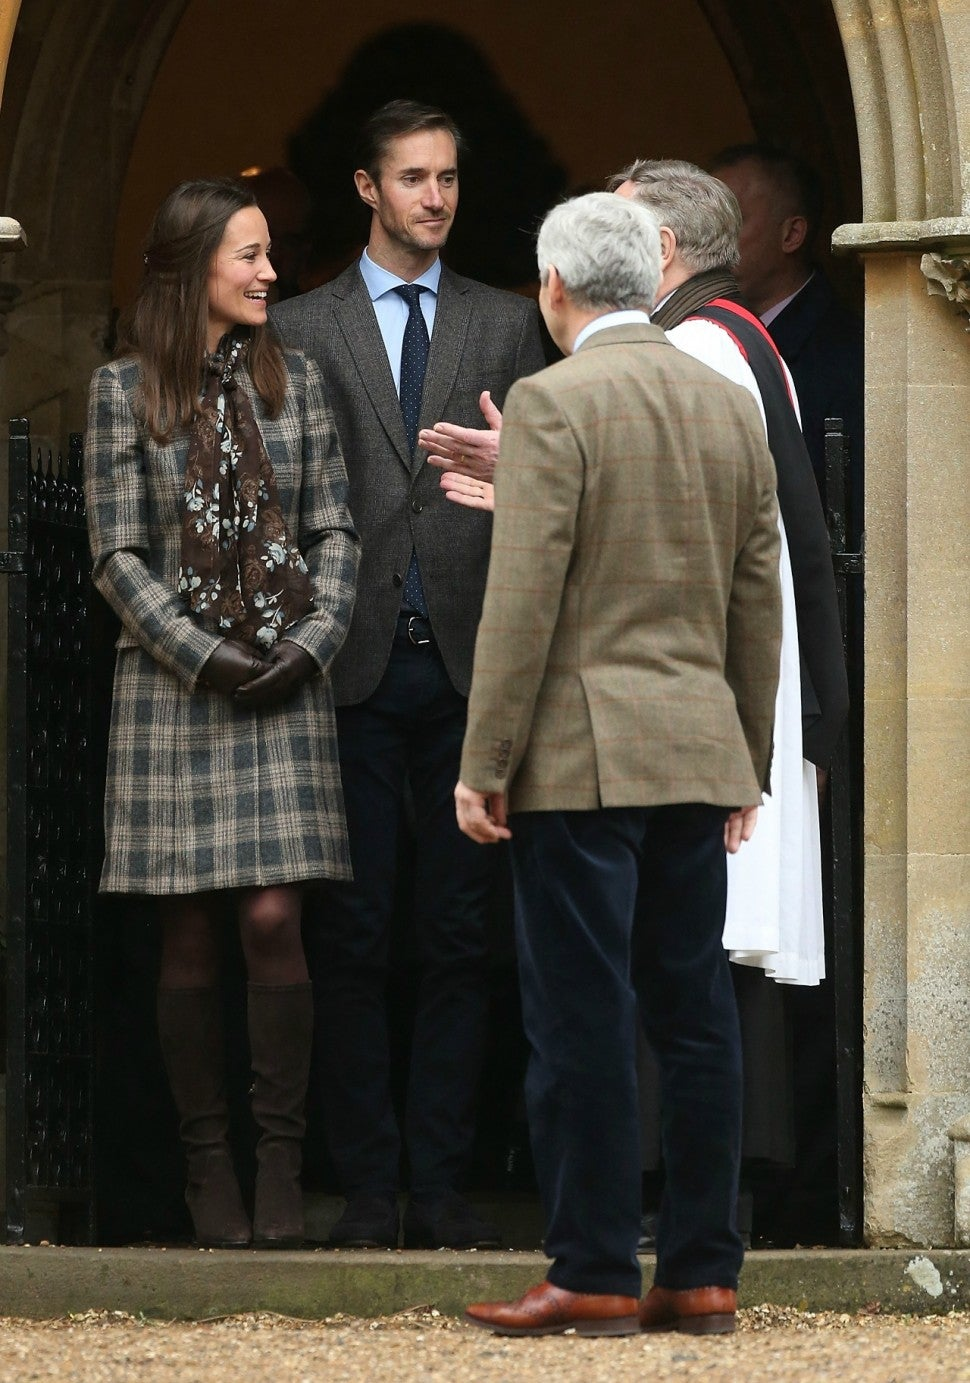 Pippa Middleton S Billionaire Fiance 8 Things To Know About James Matthews Entertainment Tonight,White Kitchen Cabinets With Carrara Marble Countertops